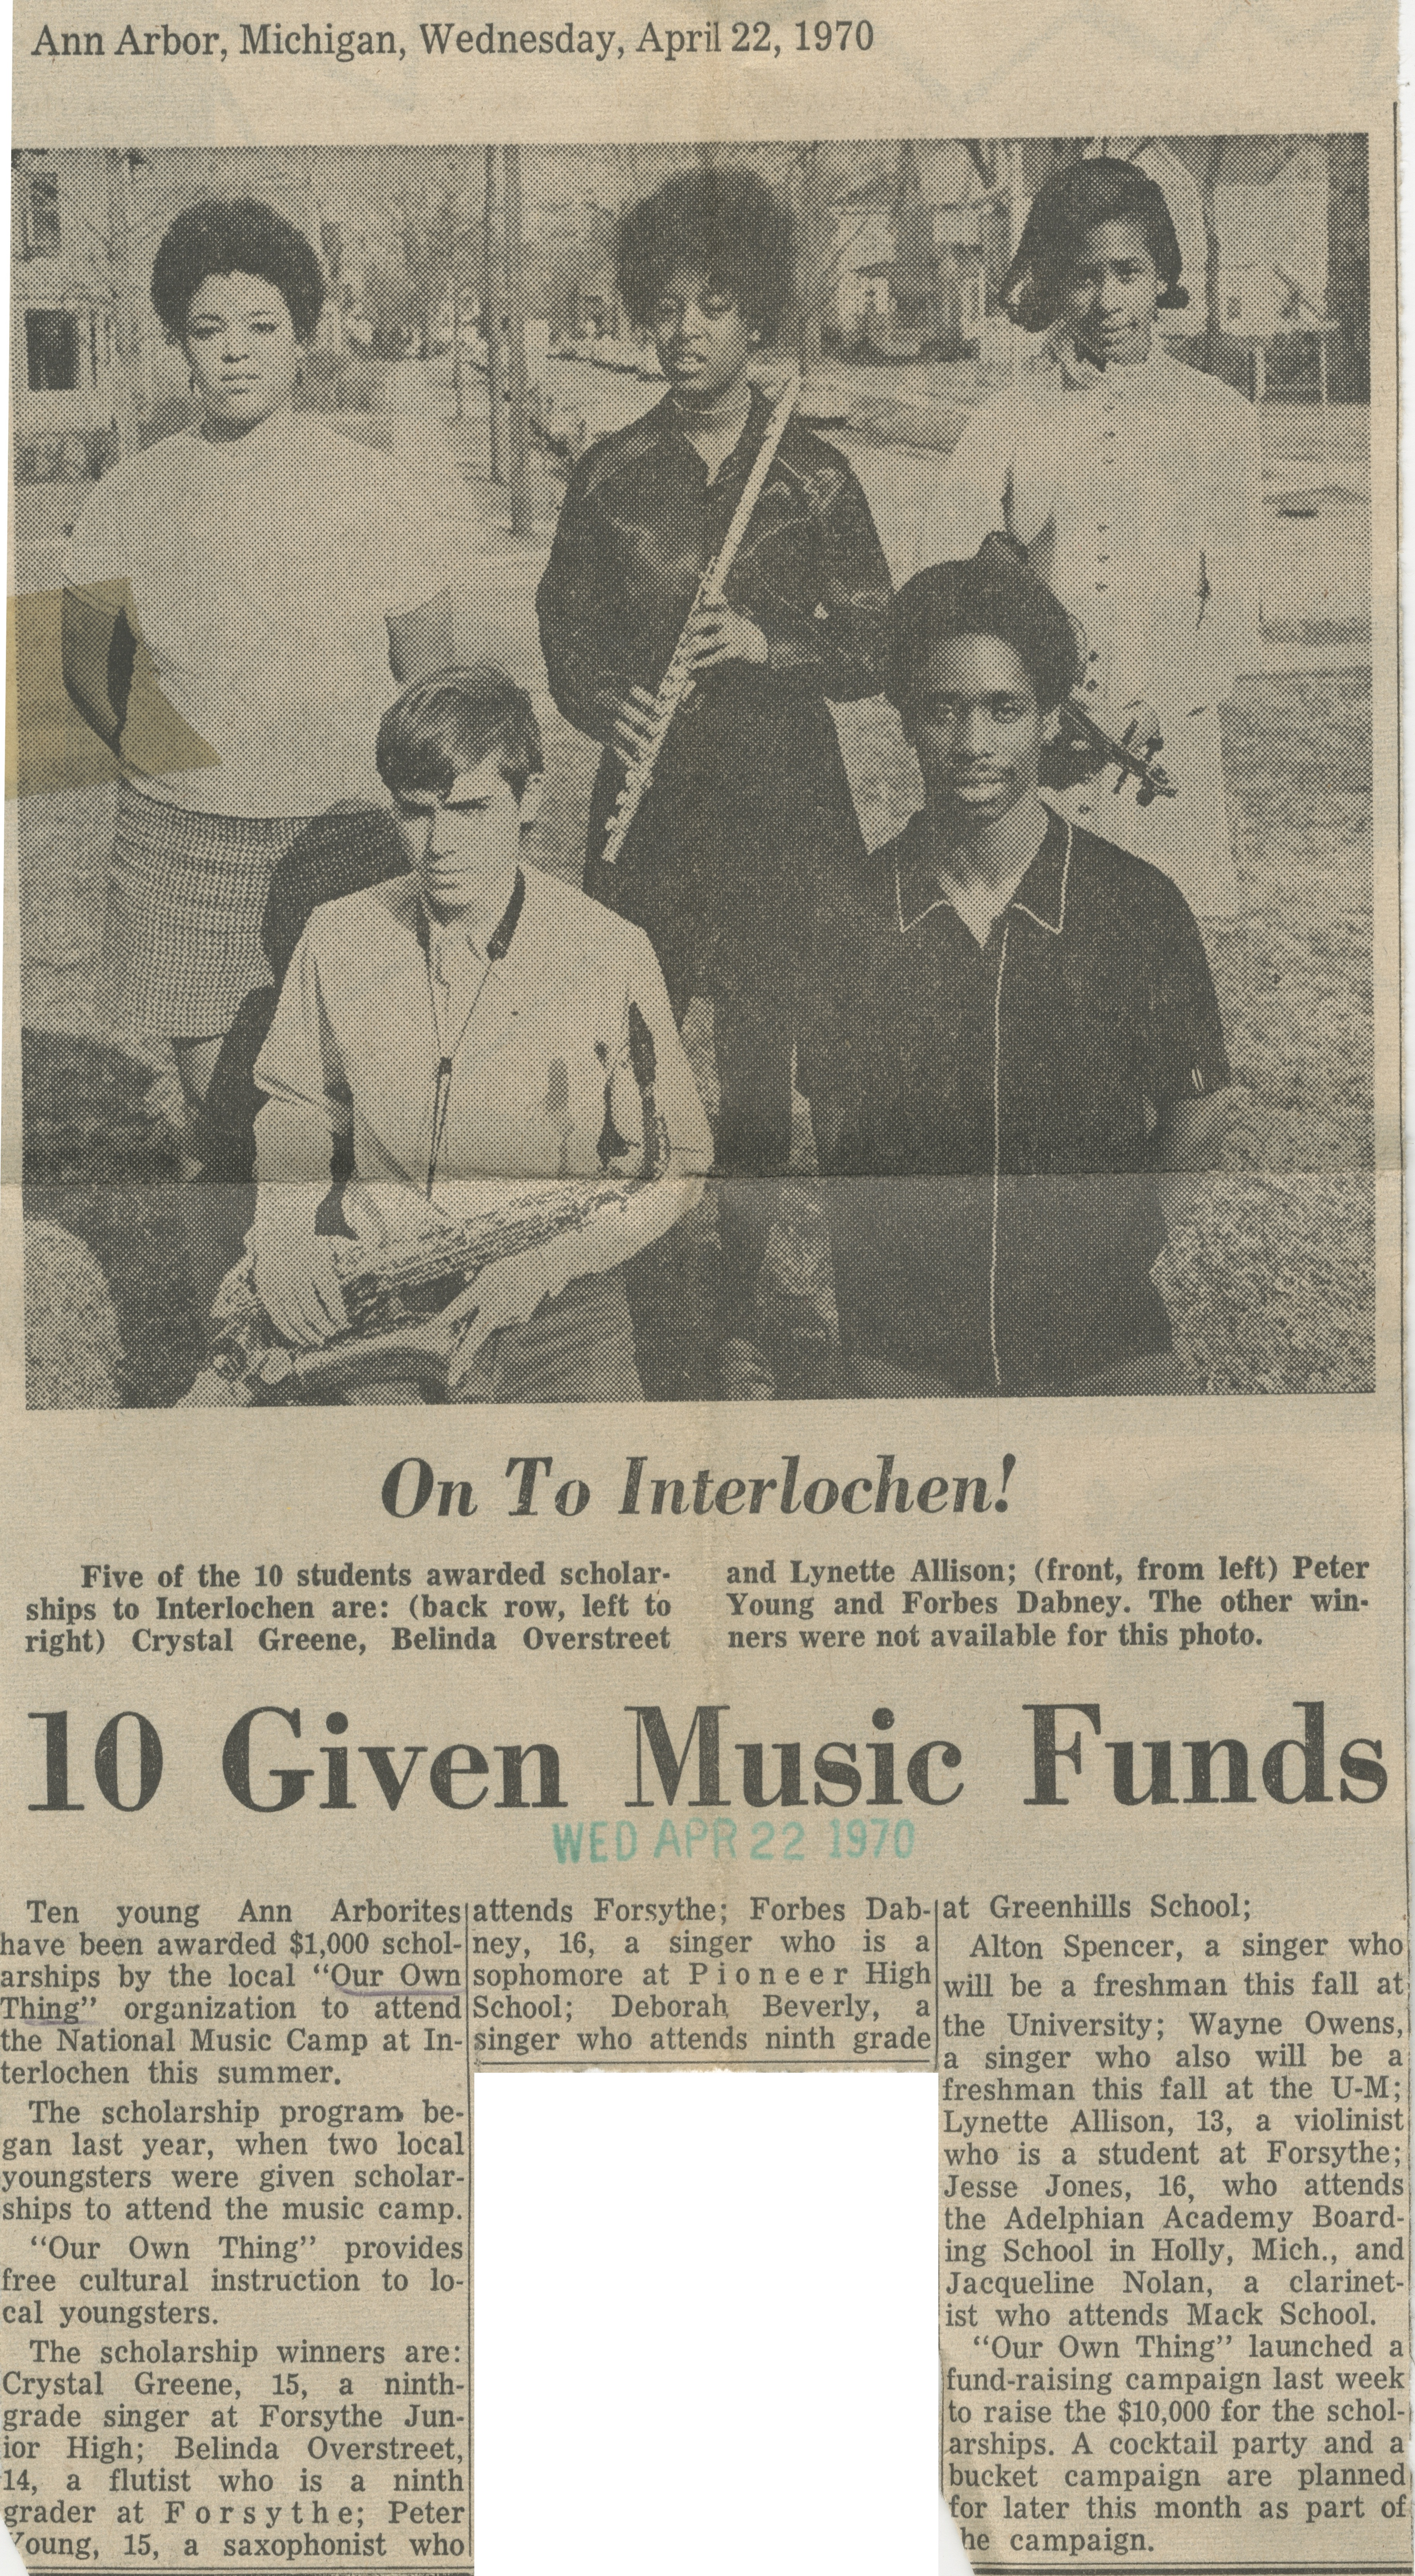 10 Given Music Funds image